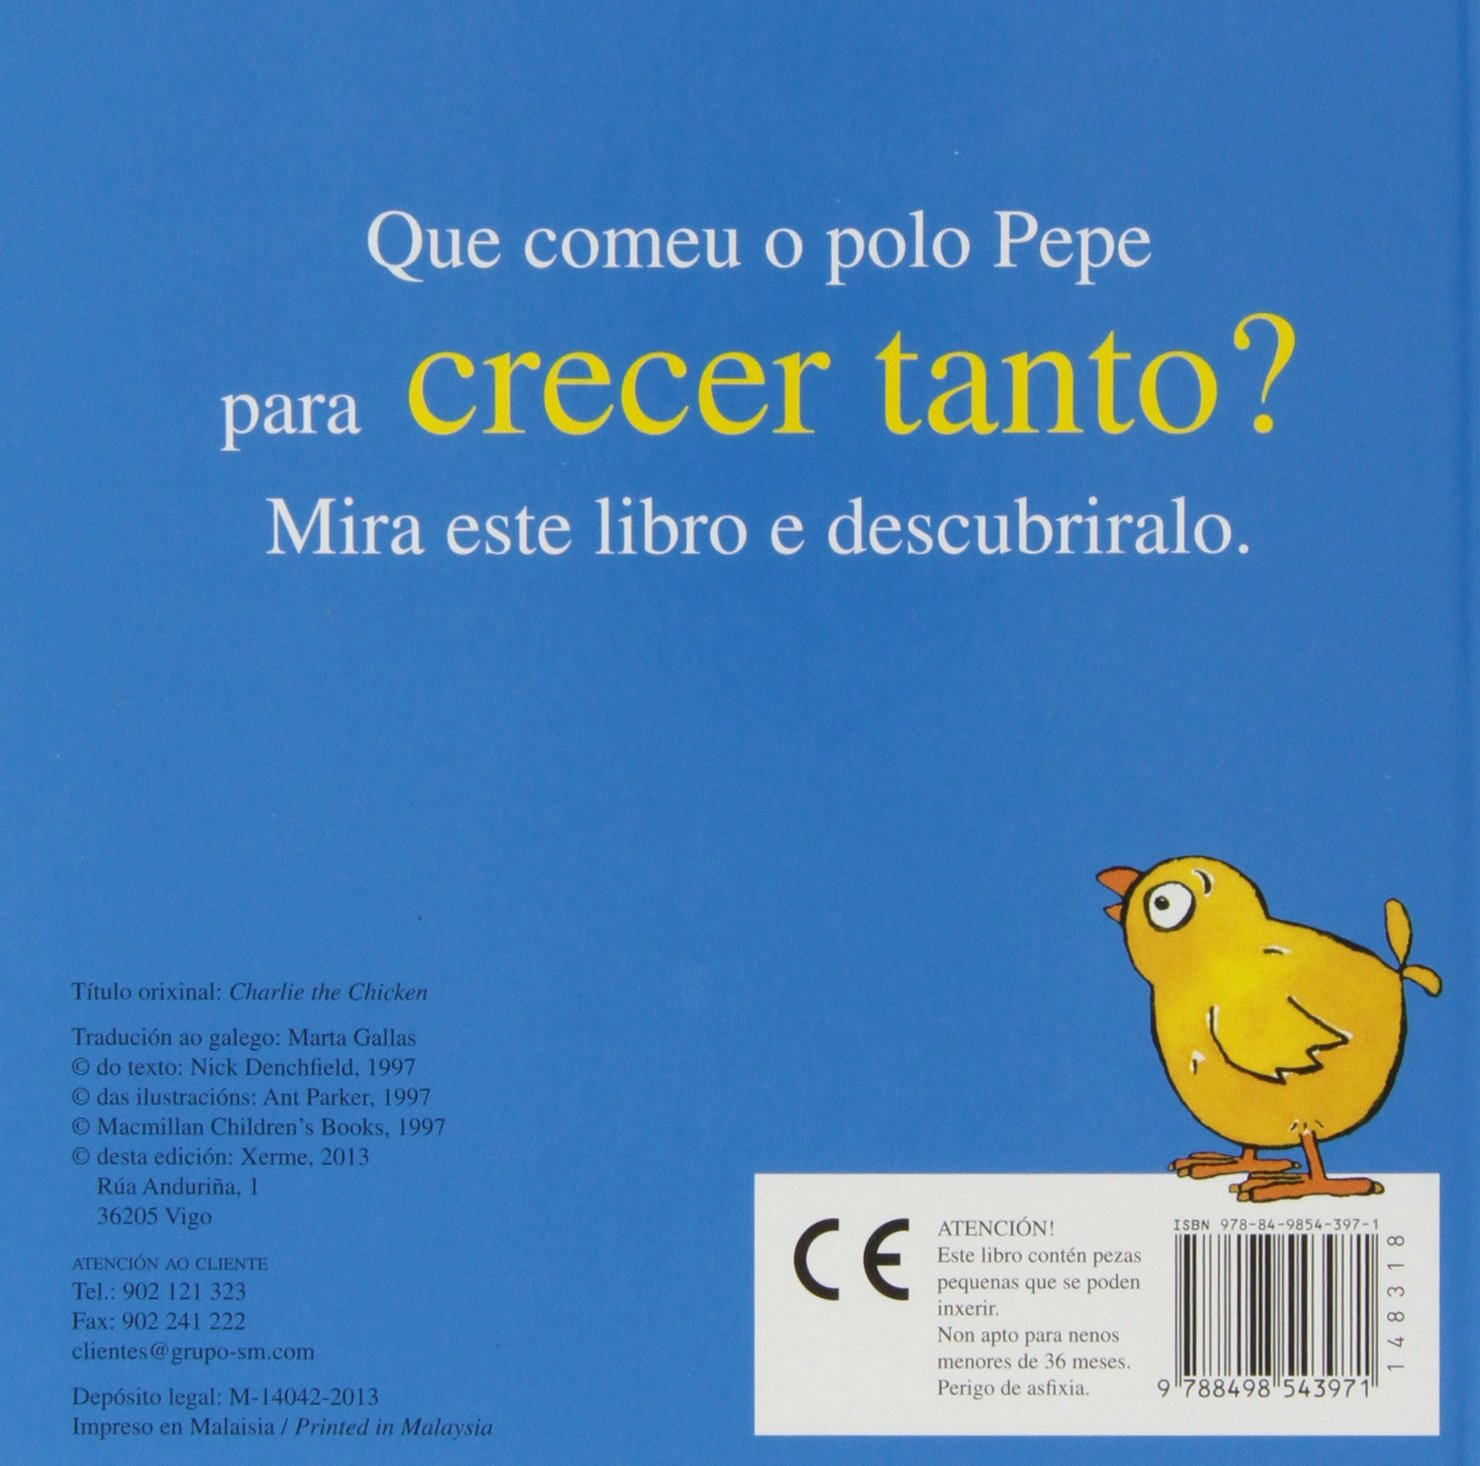 O polo Pepe: Amazon.es: Nick Denchfield, Ant Parker: Libros